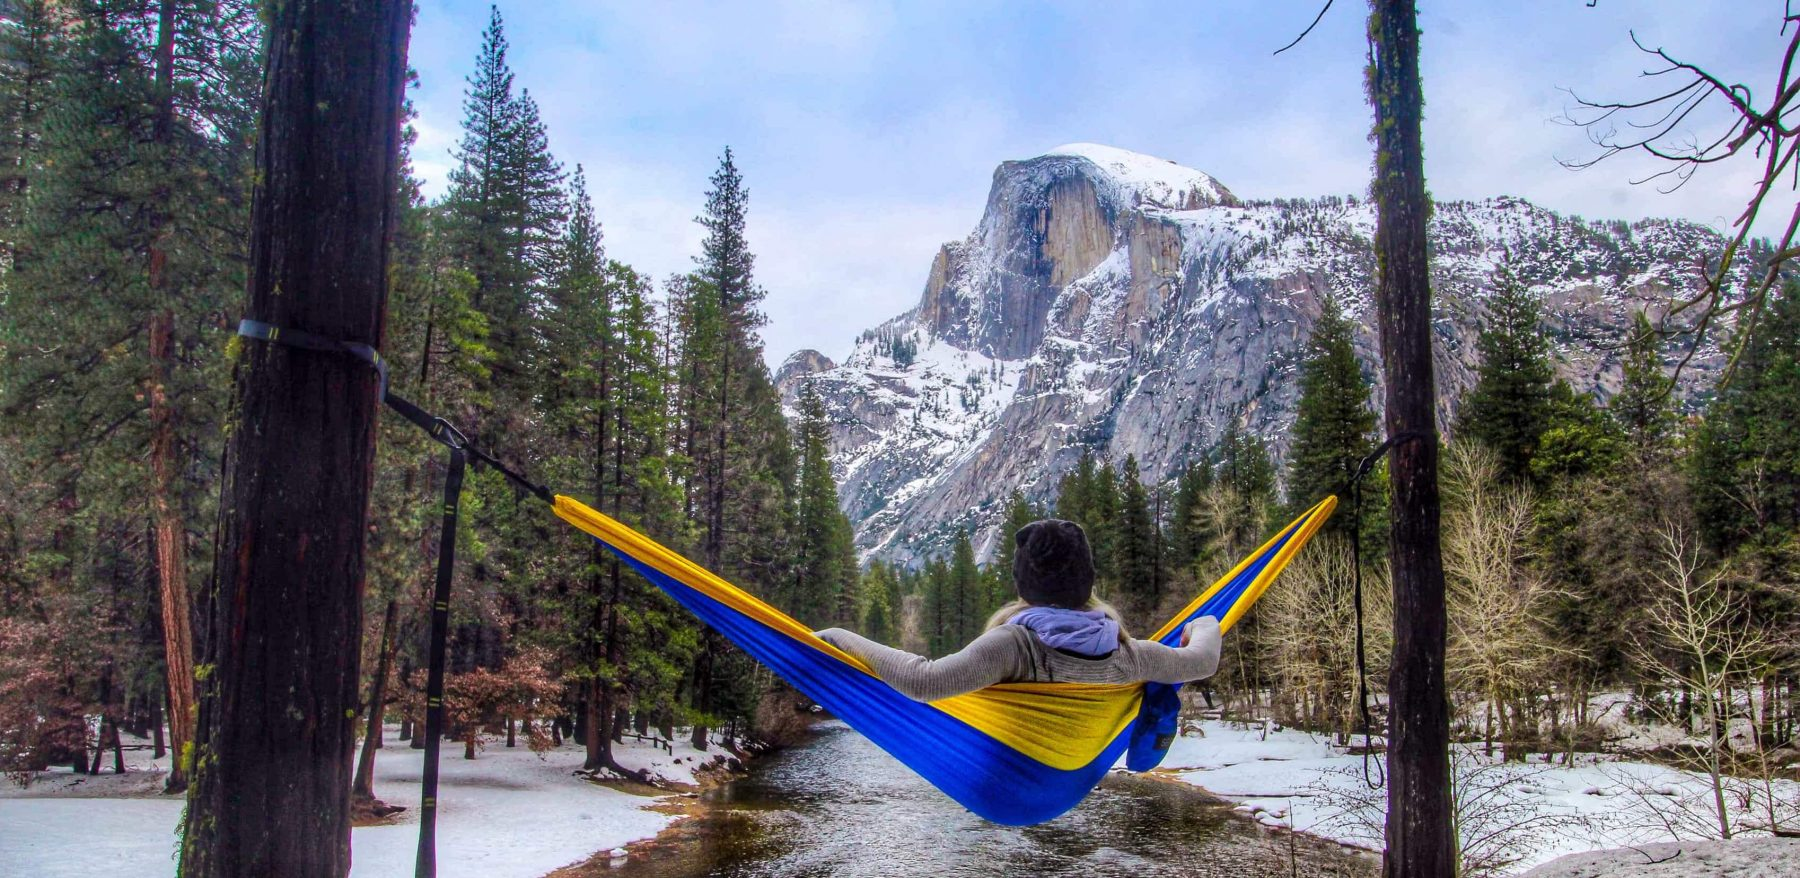 of the for be outfitters camp away re able to from on hammocks relish nothing once outdoors camping stresses beats wise simply wilderness double you review being sale owl hammock used keen if ll single